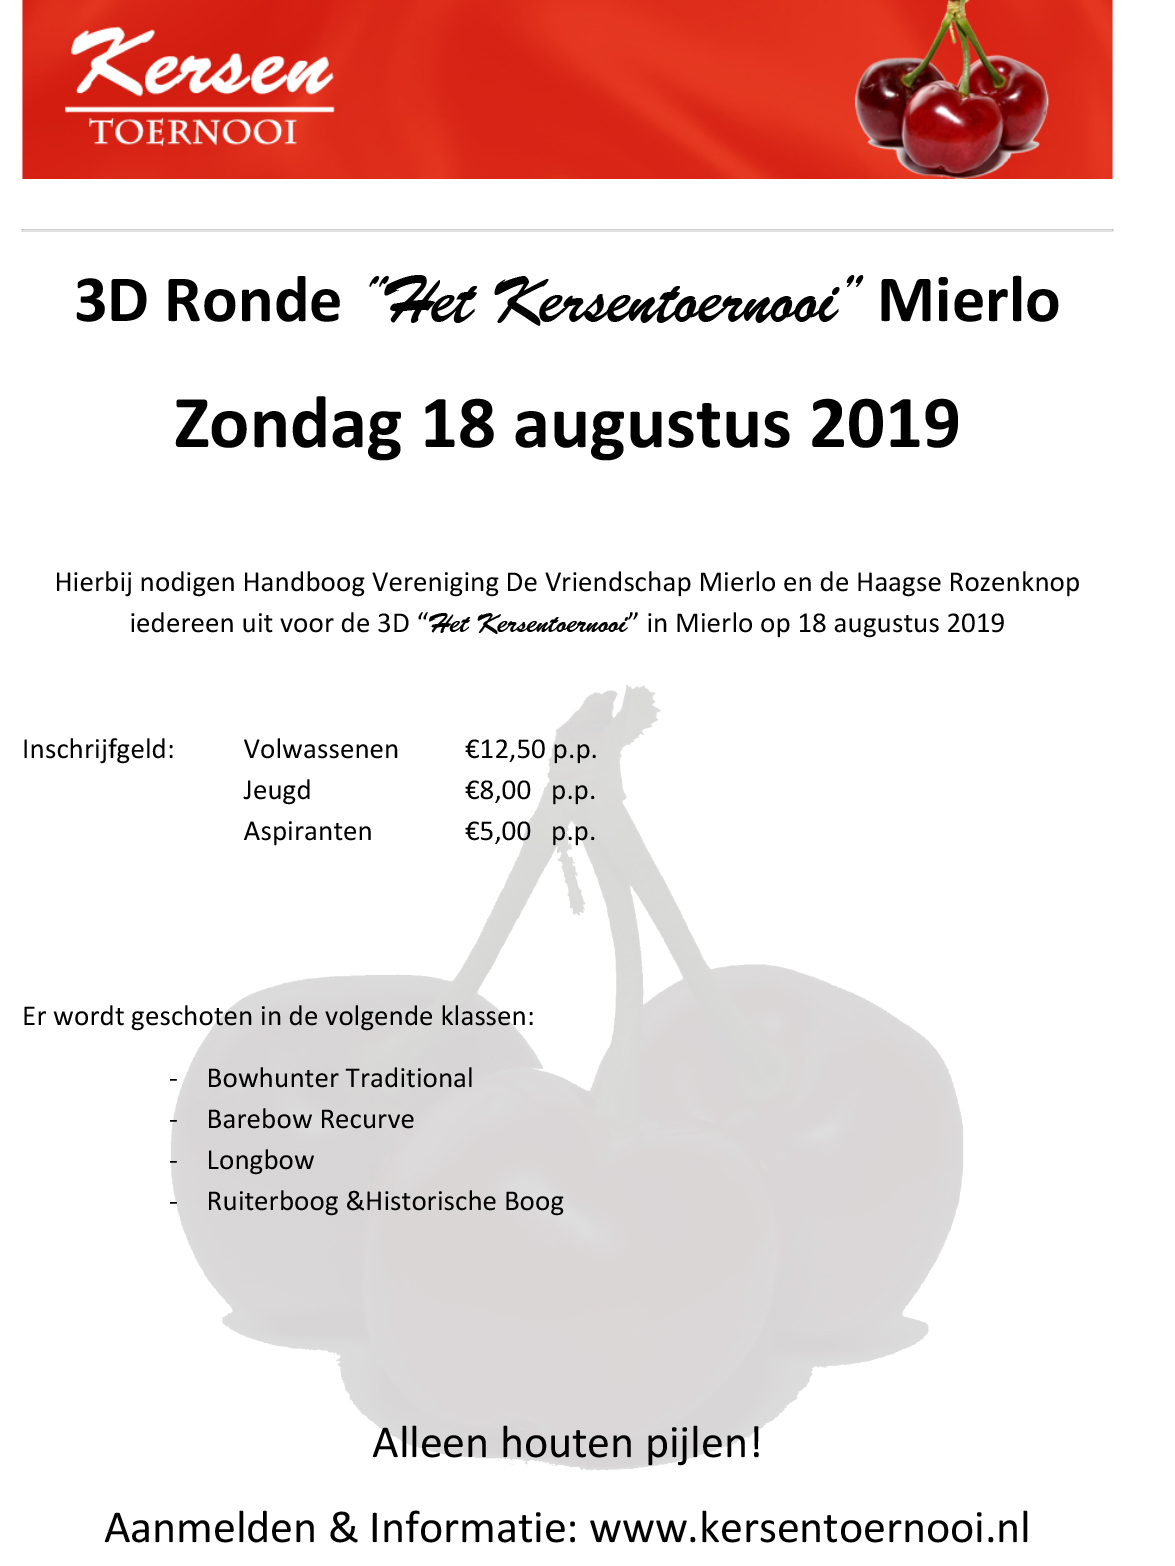 Microsoft Word - Uitnodiging 3D Ronde.docx